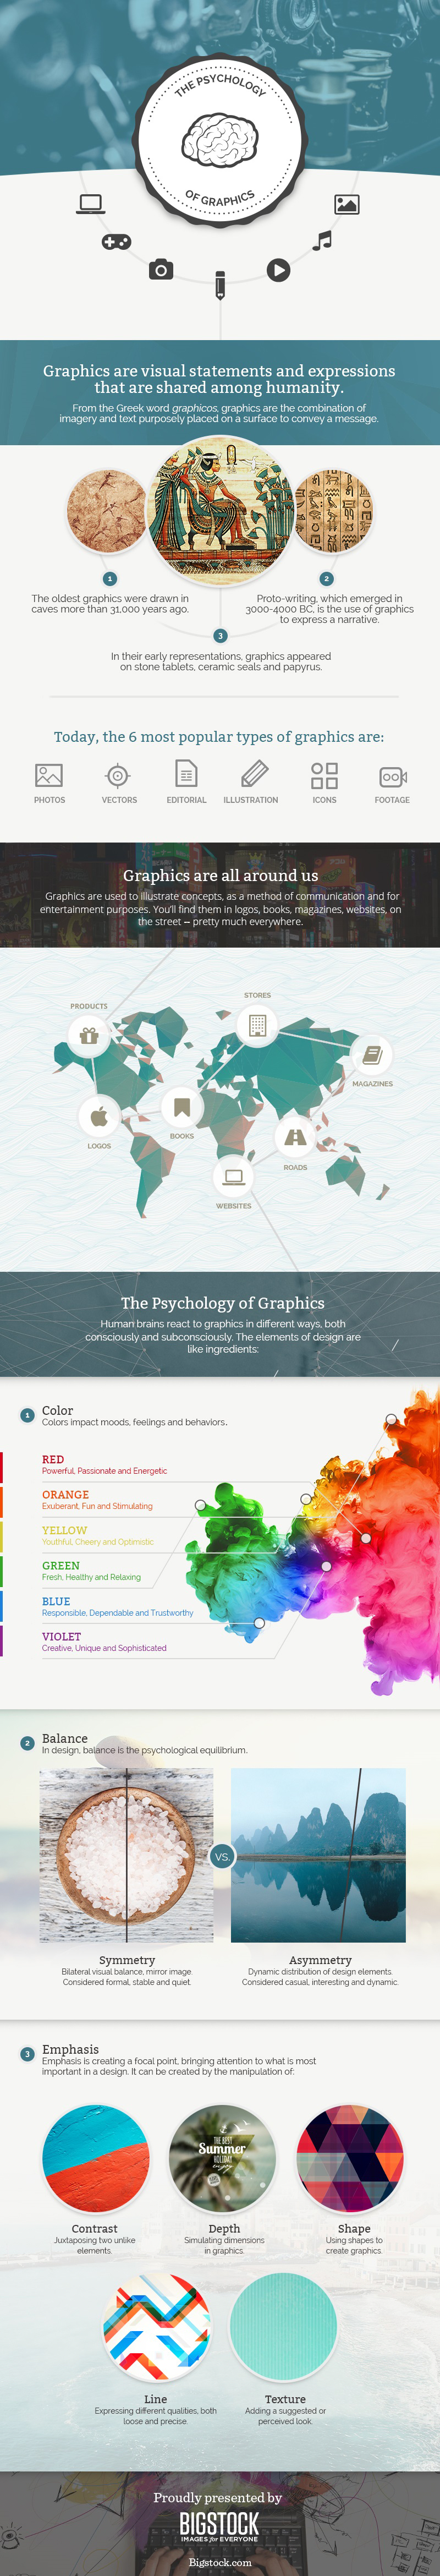 The Psychology of Infographics [Infographic] - MissyWard.com